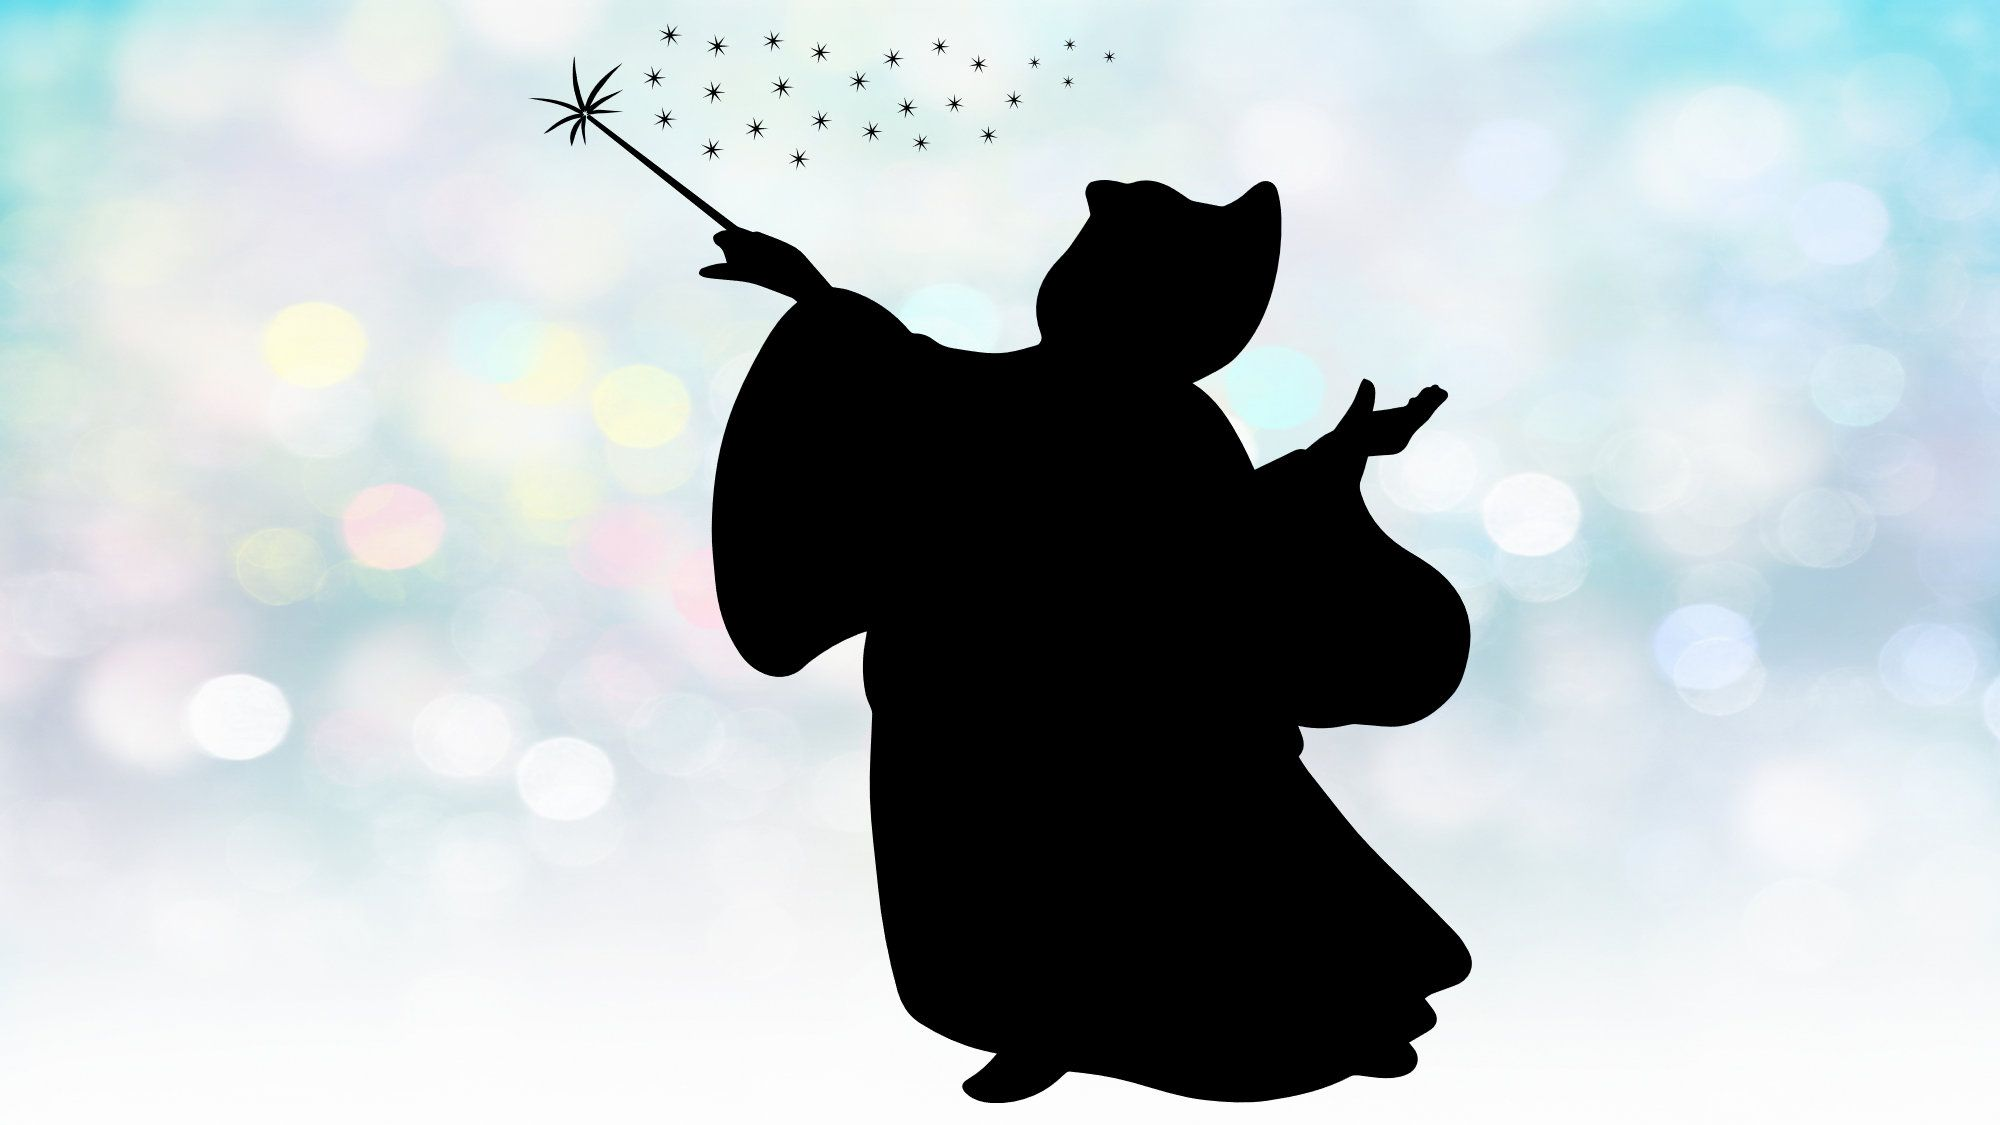 Disney Clipart Simple Easy Large Black White Silhouette Of Fairy Godmother From Cinderella Disney Movie Magical Digital Download Svg Disney Clipart Cinderella Disney Cinderella Fairy Godmother